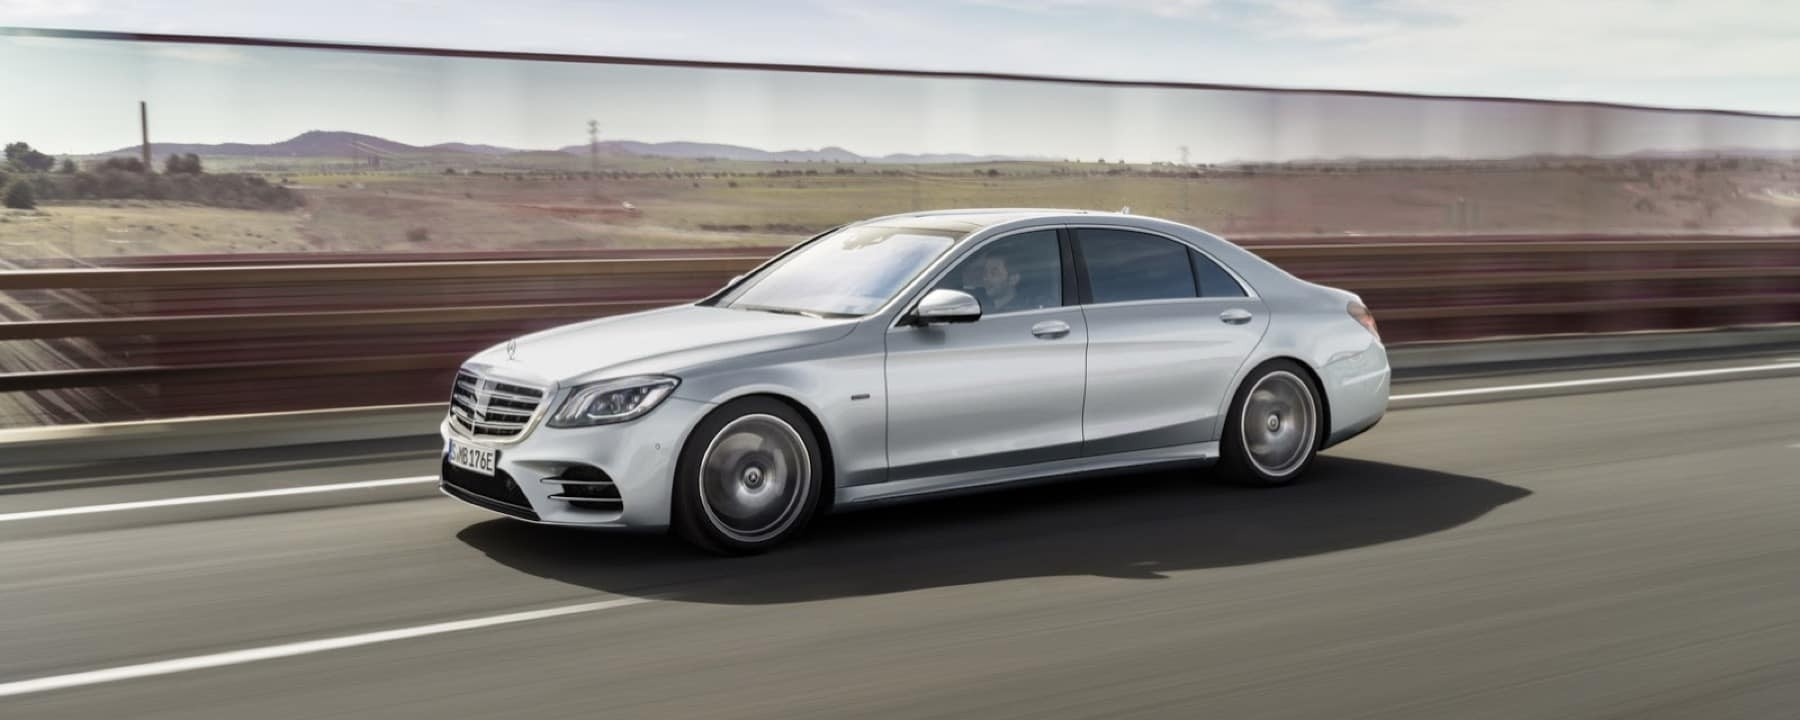 Introducing the new plug in hybrid the s 560e mercedes for 2017 mercedes benz s550 plug in hybrid